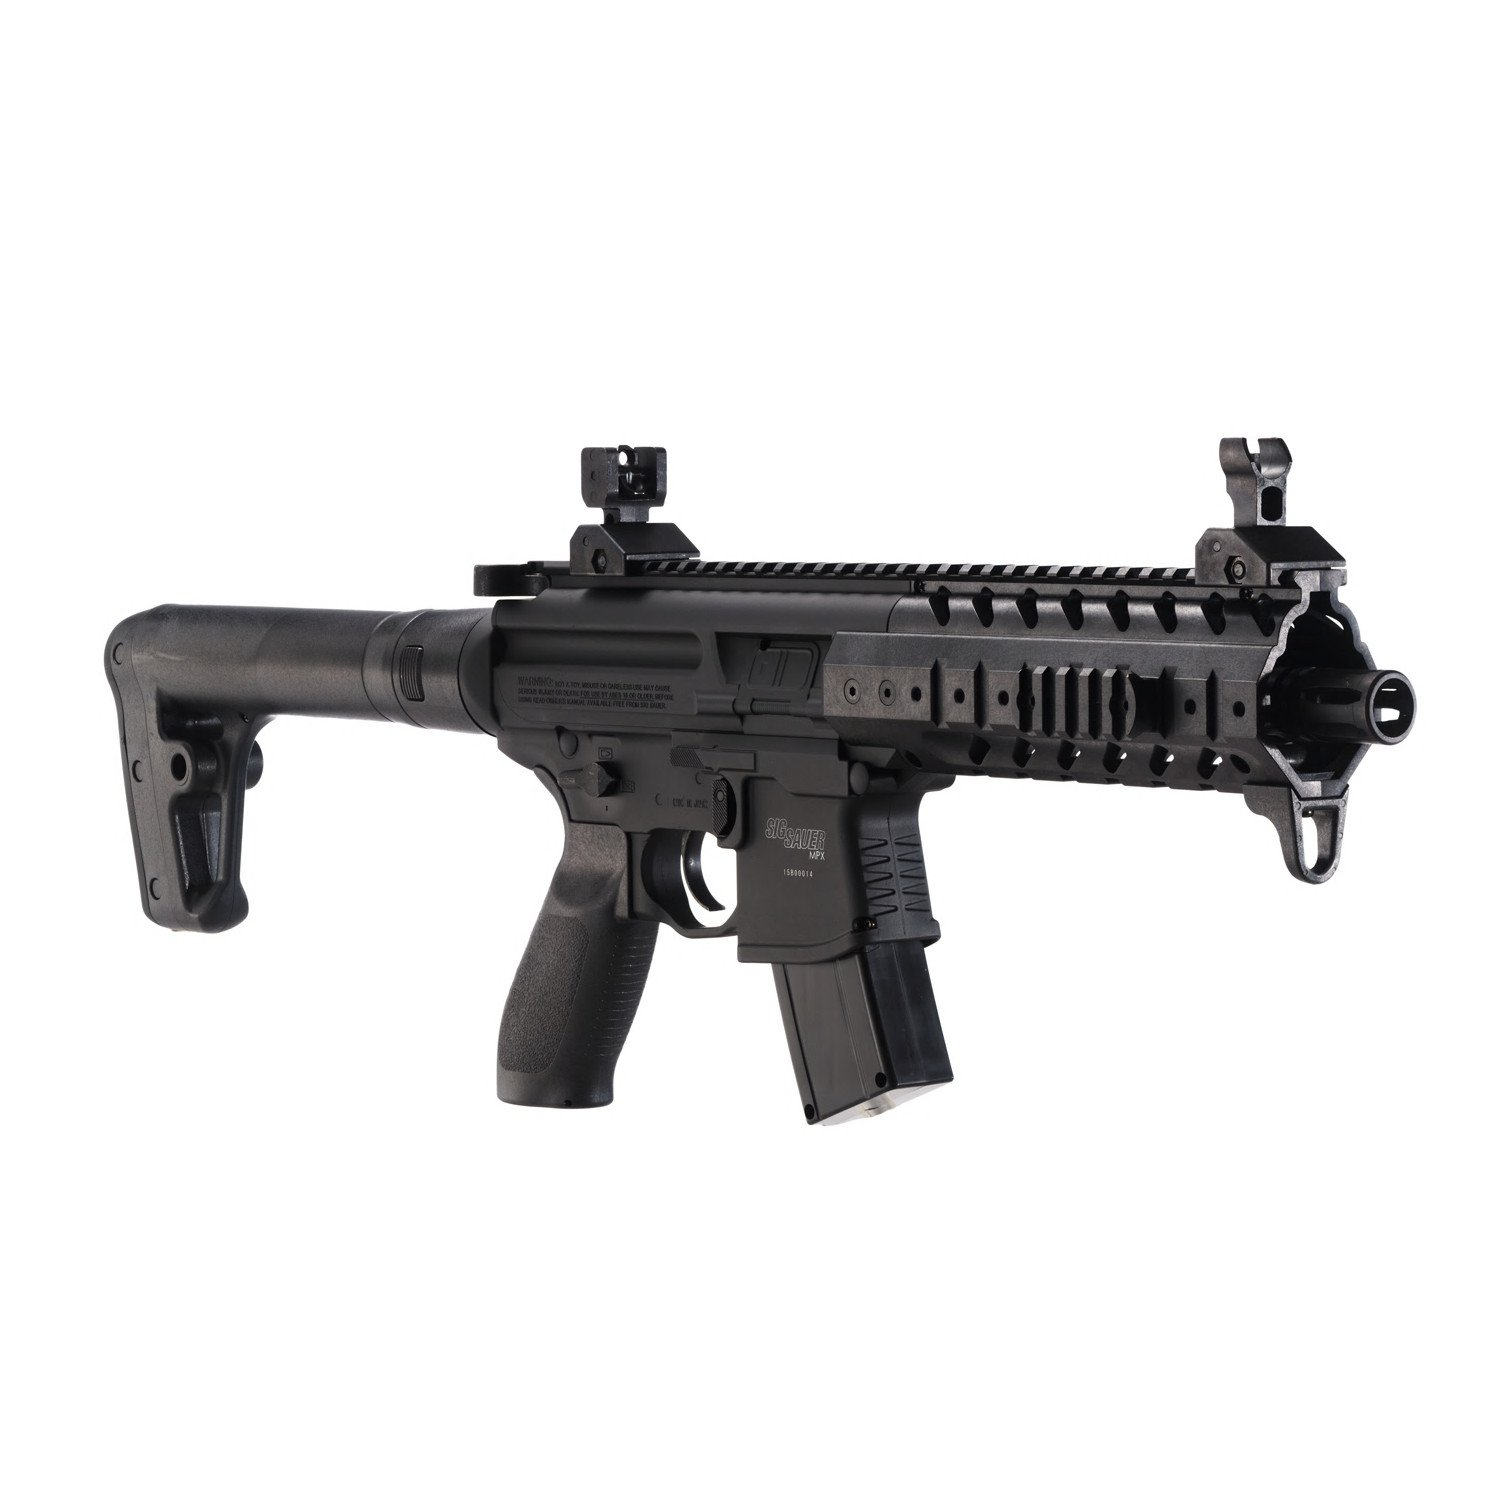 Sig Sauer MPX .177 CAL Co2 Powered 88 GR Air Rifle (30 Rounds), Black